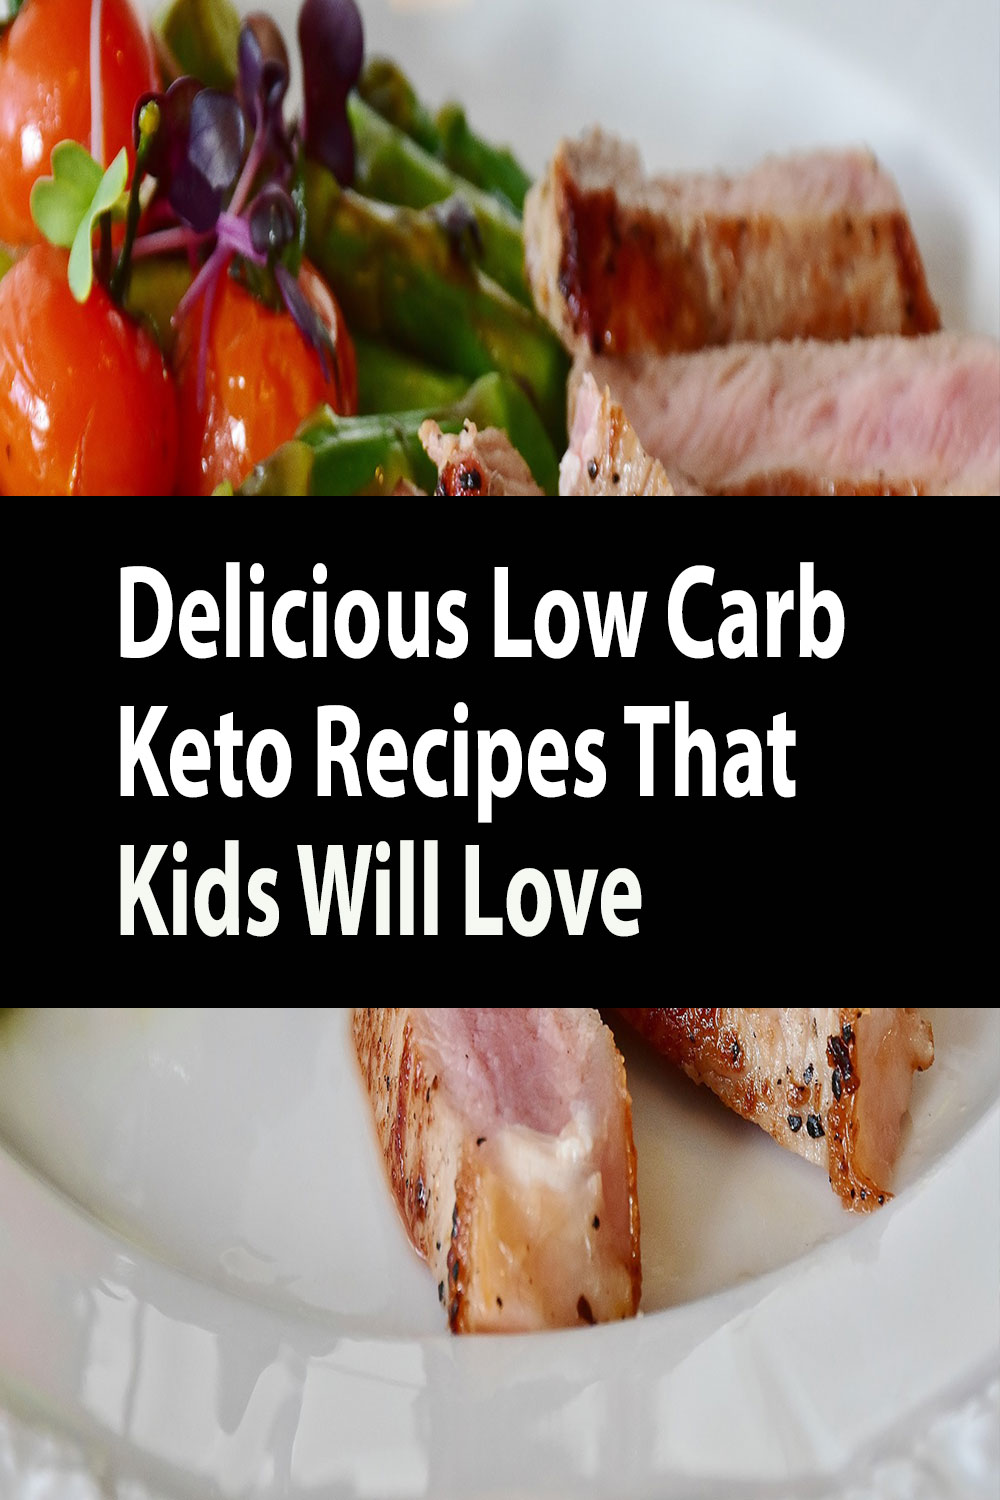 Delicious Low Carb Keto Recipes That Kids Will Love